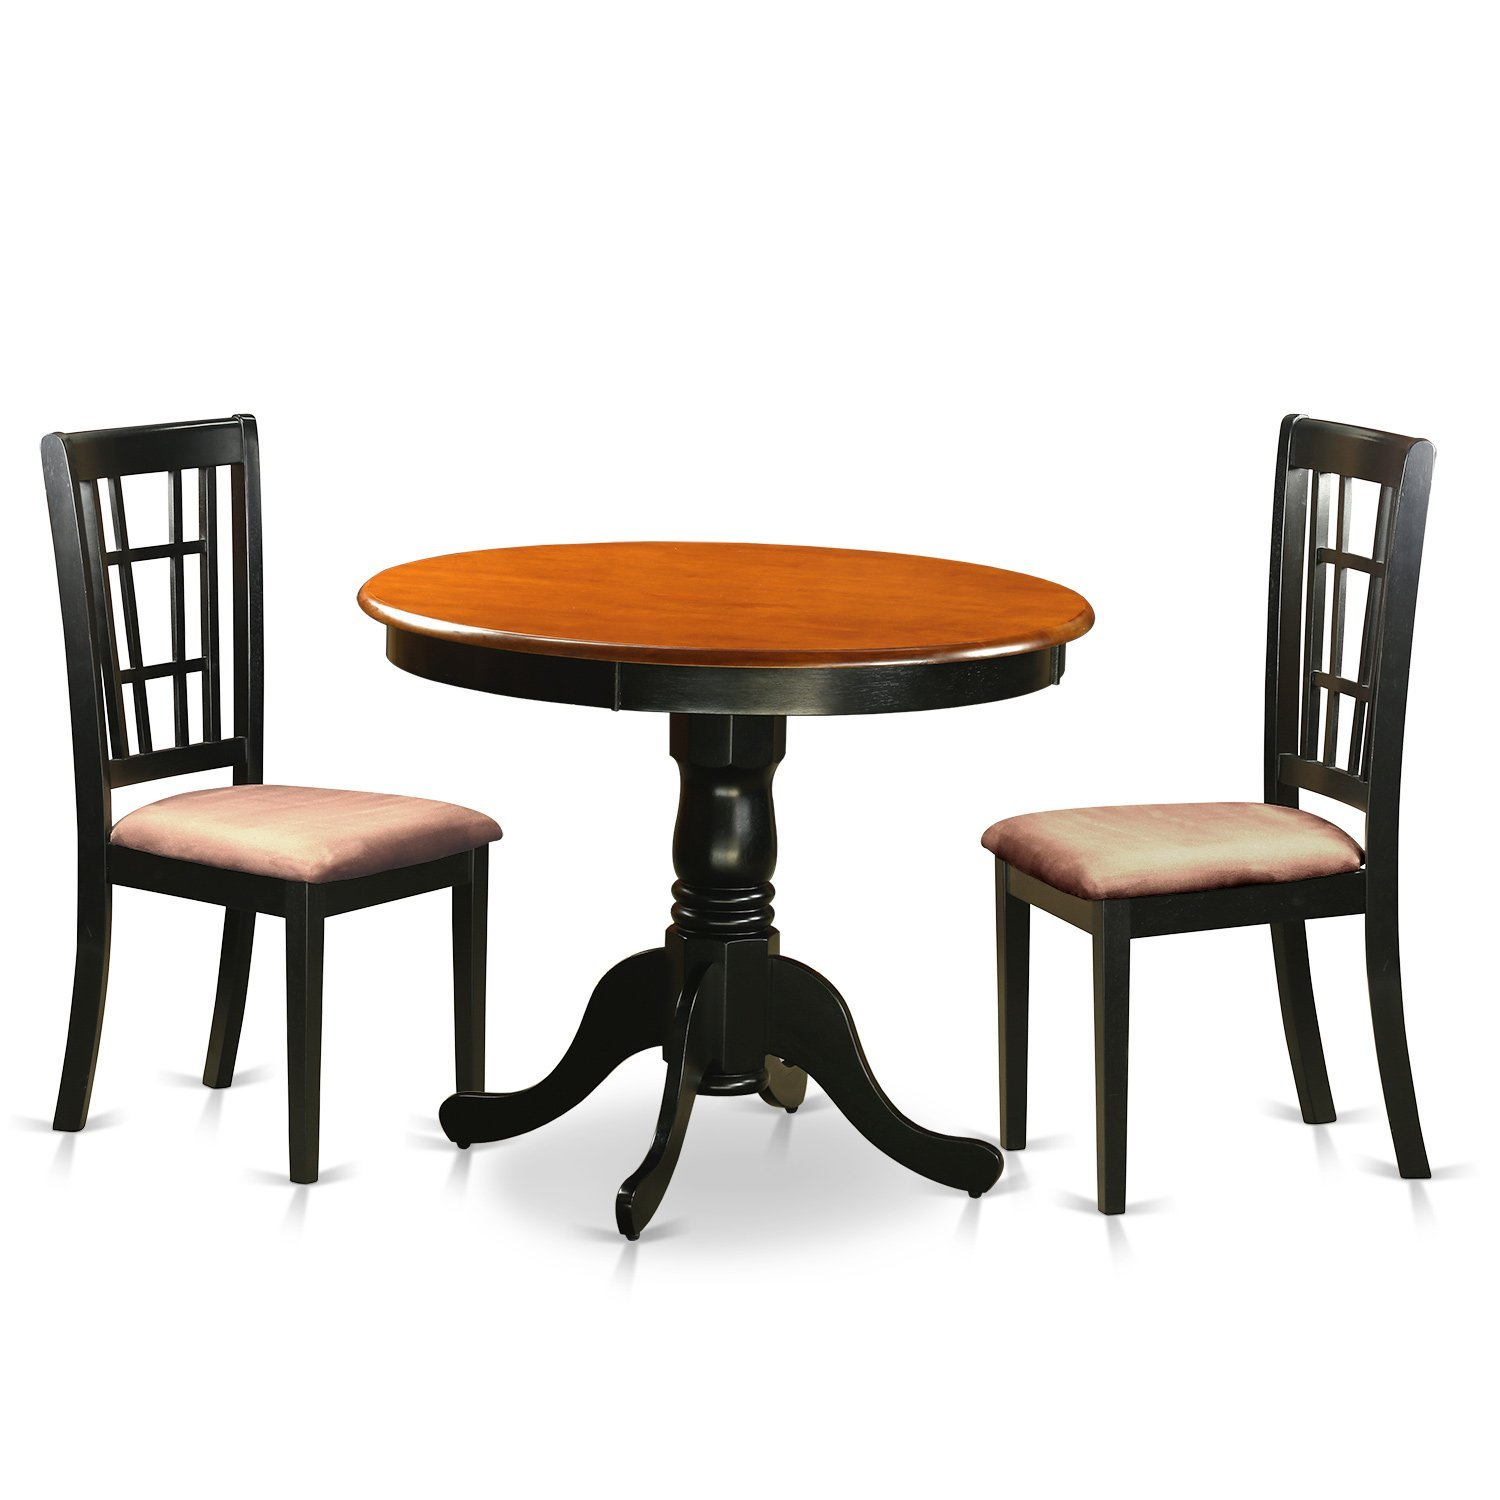 East West Furniture ANNI3-BLK-C 3 Piece Dining Table with 2 Microfiber Antique Chairs, Black/Cherry Finish